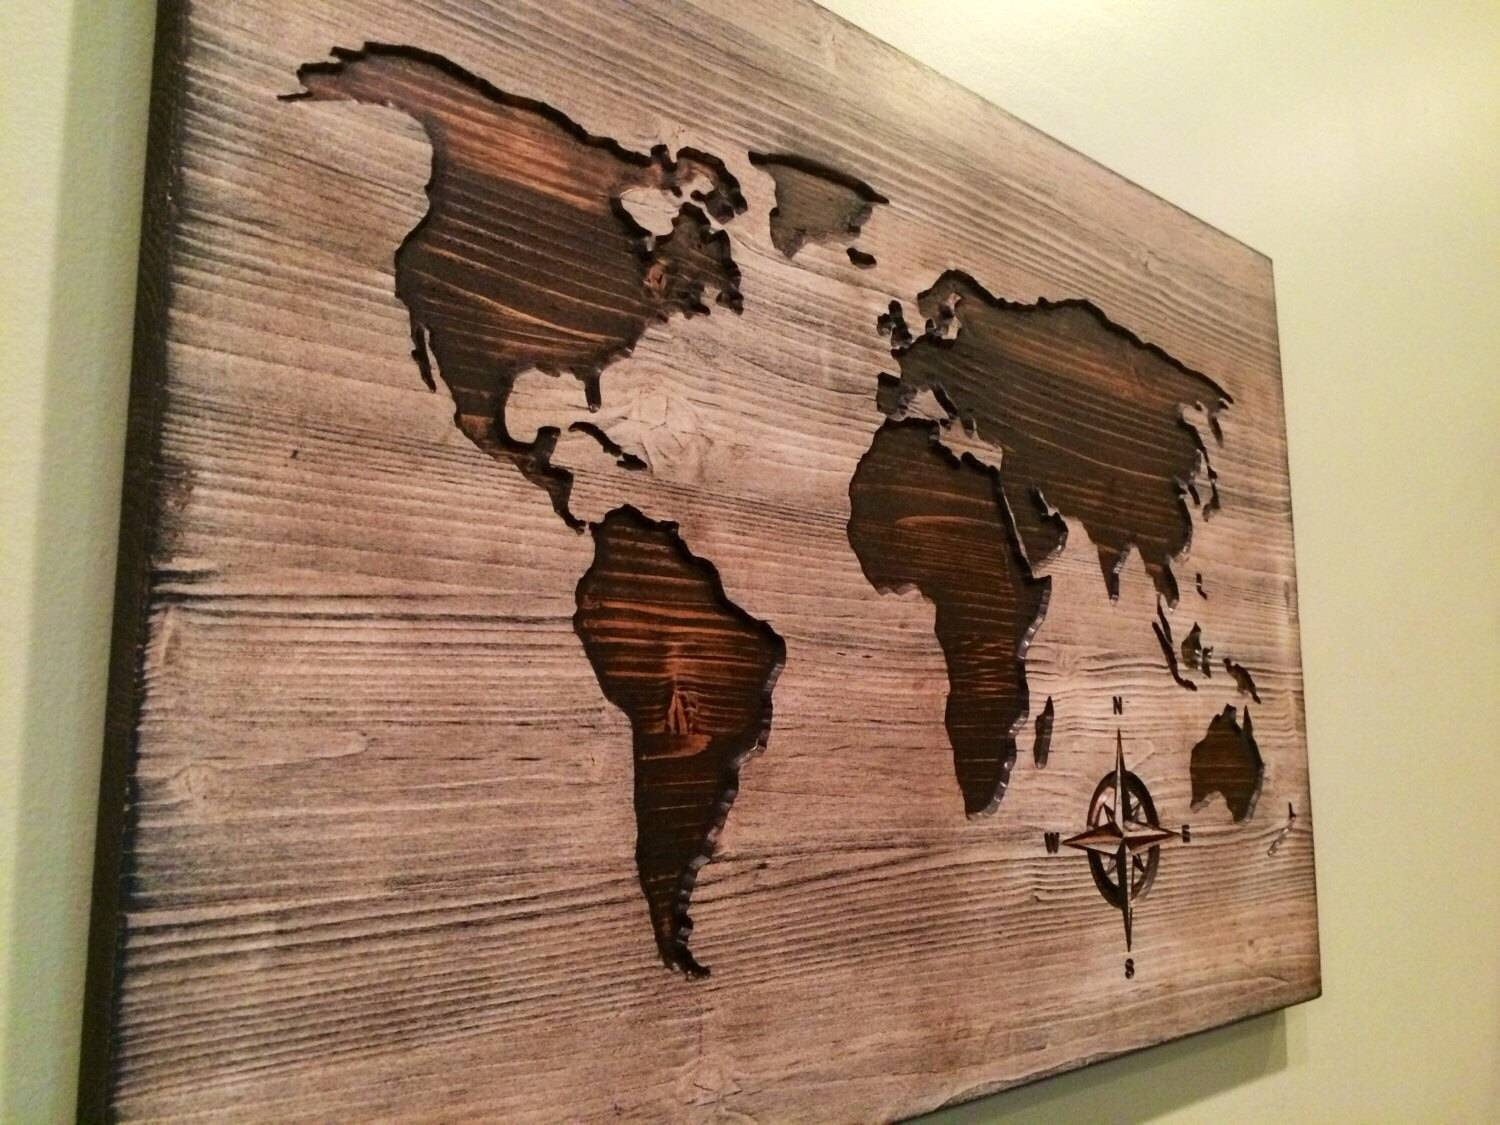 Carved Wooden World Map Wood Wall Art World Map Home Decor Regarding Most Up To Date Maps For Wall Art (View 5 of 20)